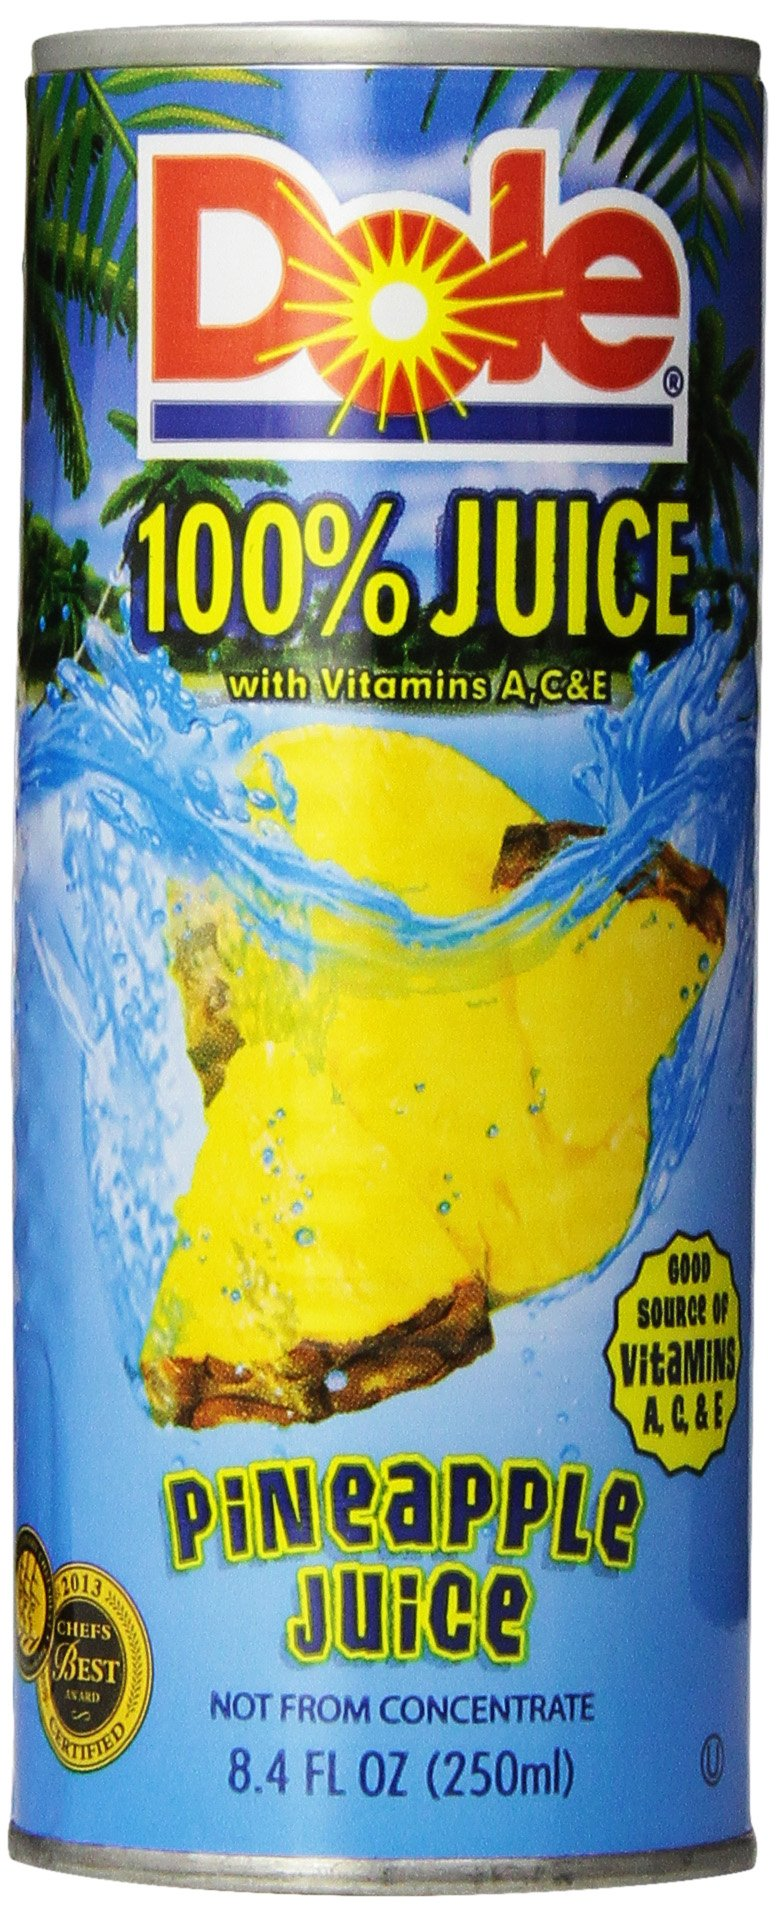 Dole Pineapple Juice, Not From Concentrate, 8.4 oz. 24 Count